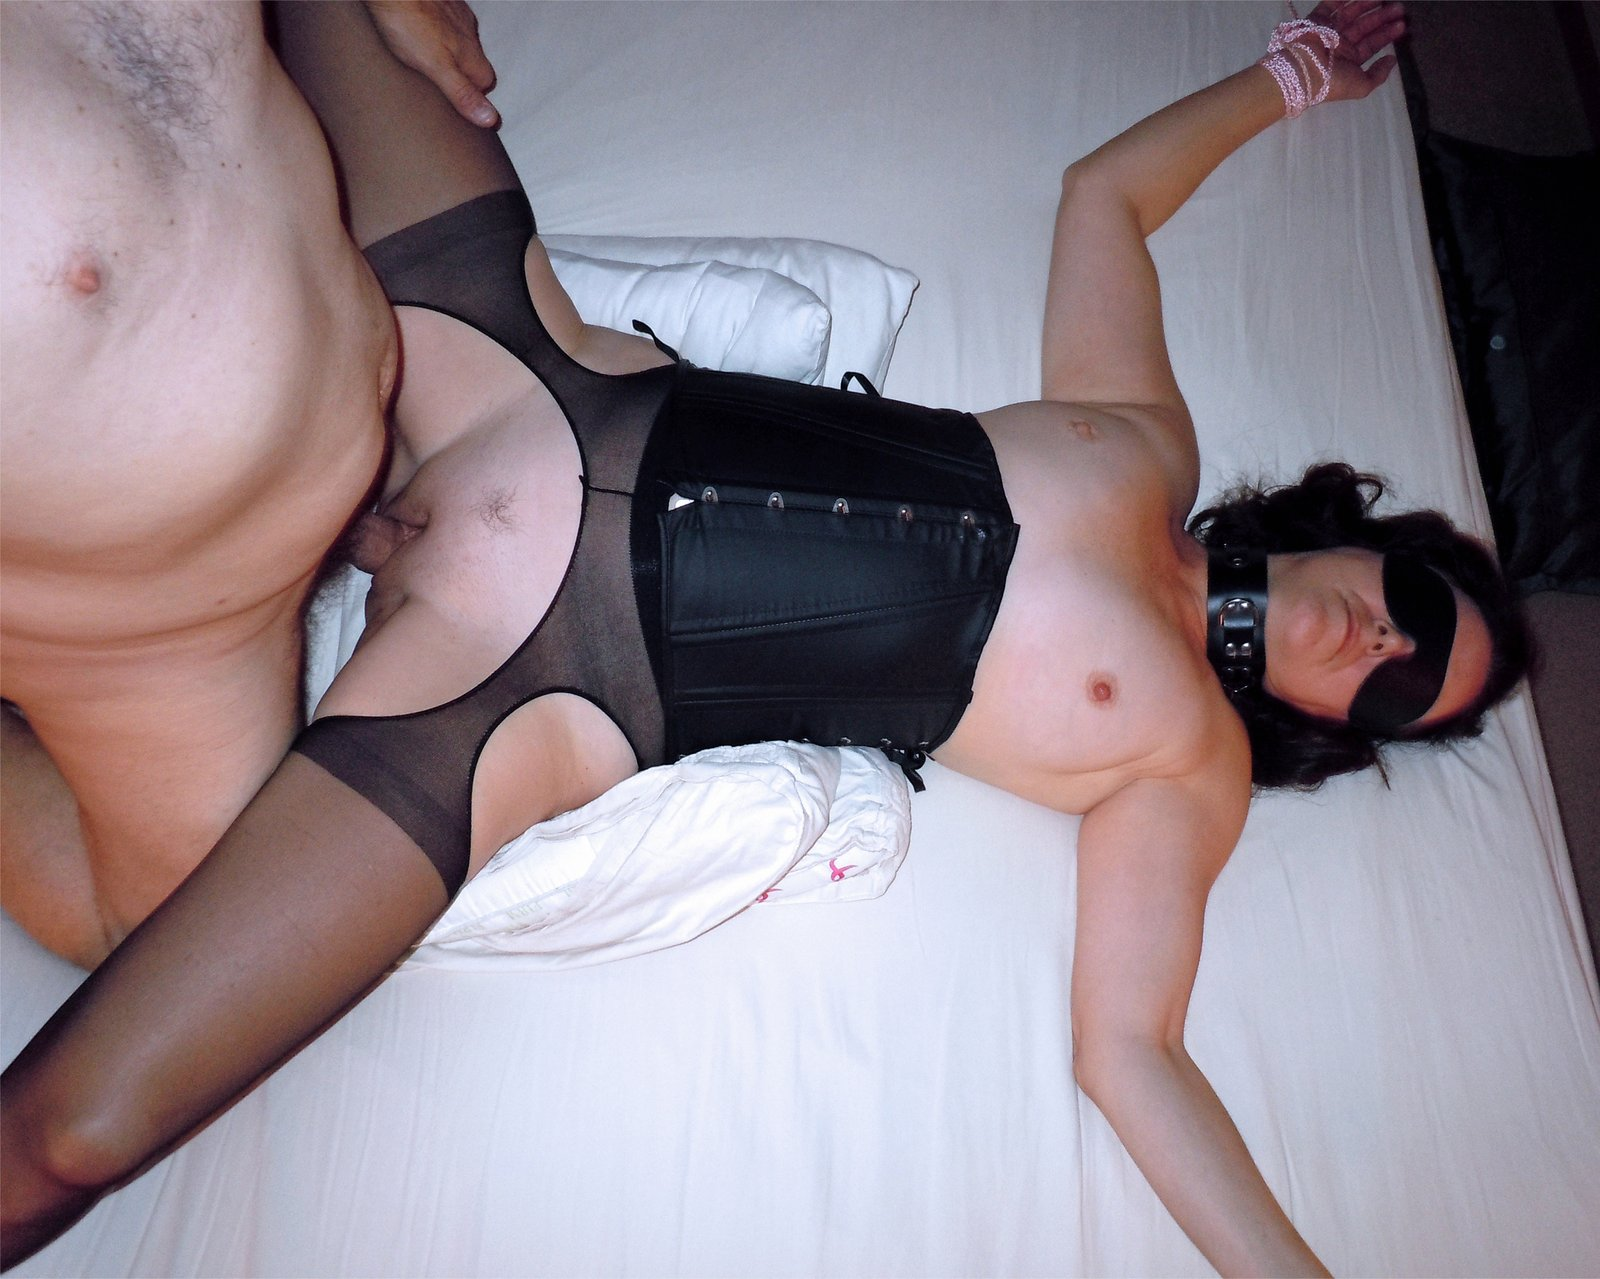 Amateur Porn Casero Tube bdsm pictures amateur wife tied up and fuckedhubby